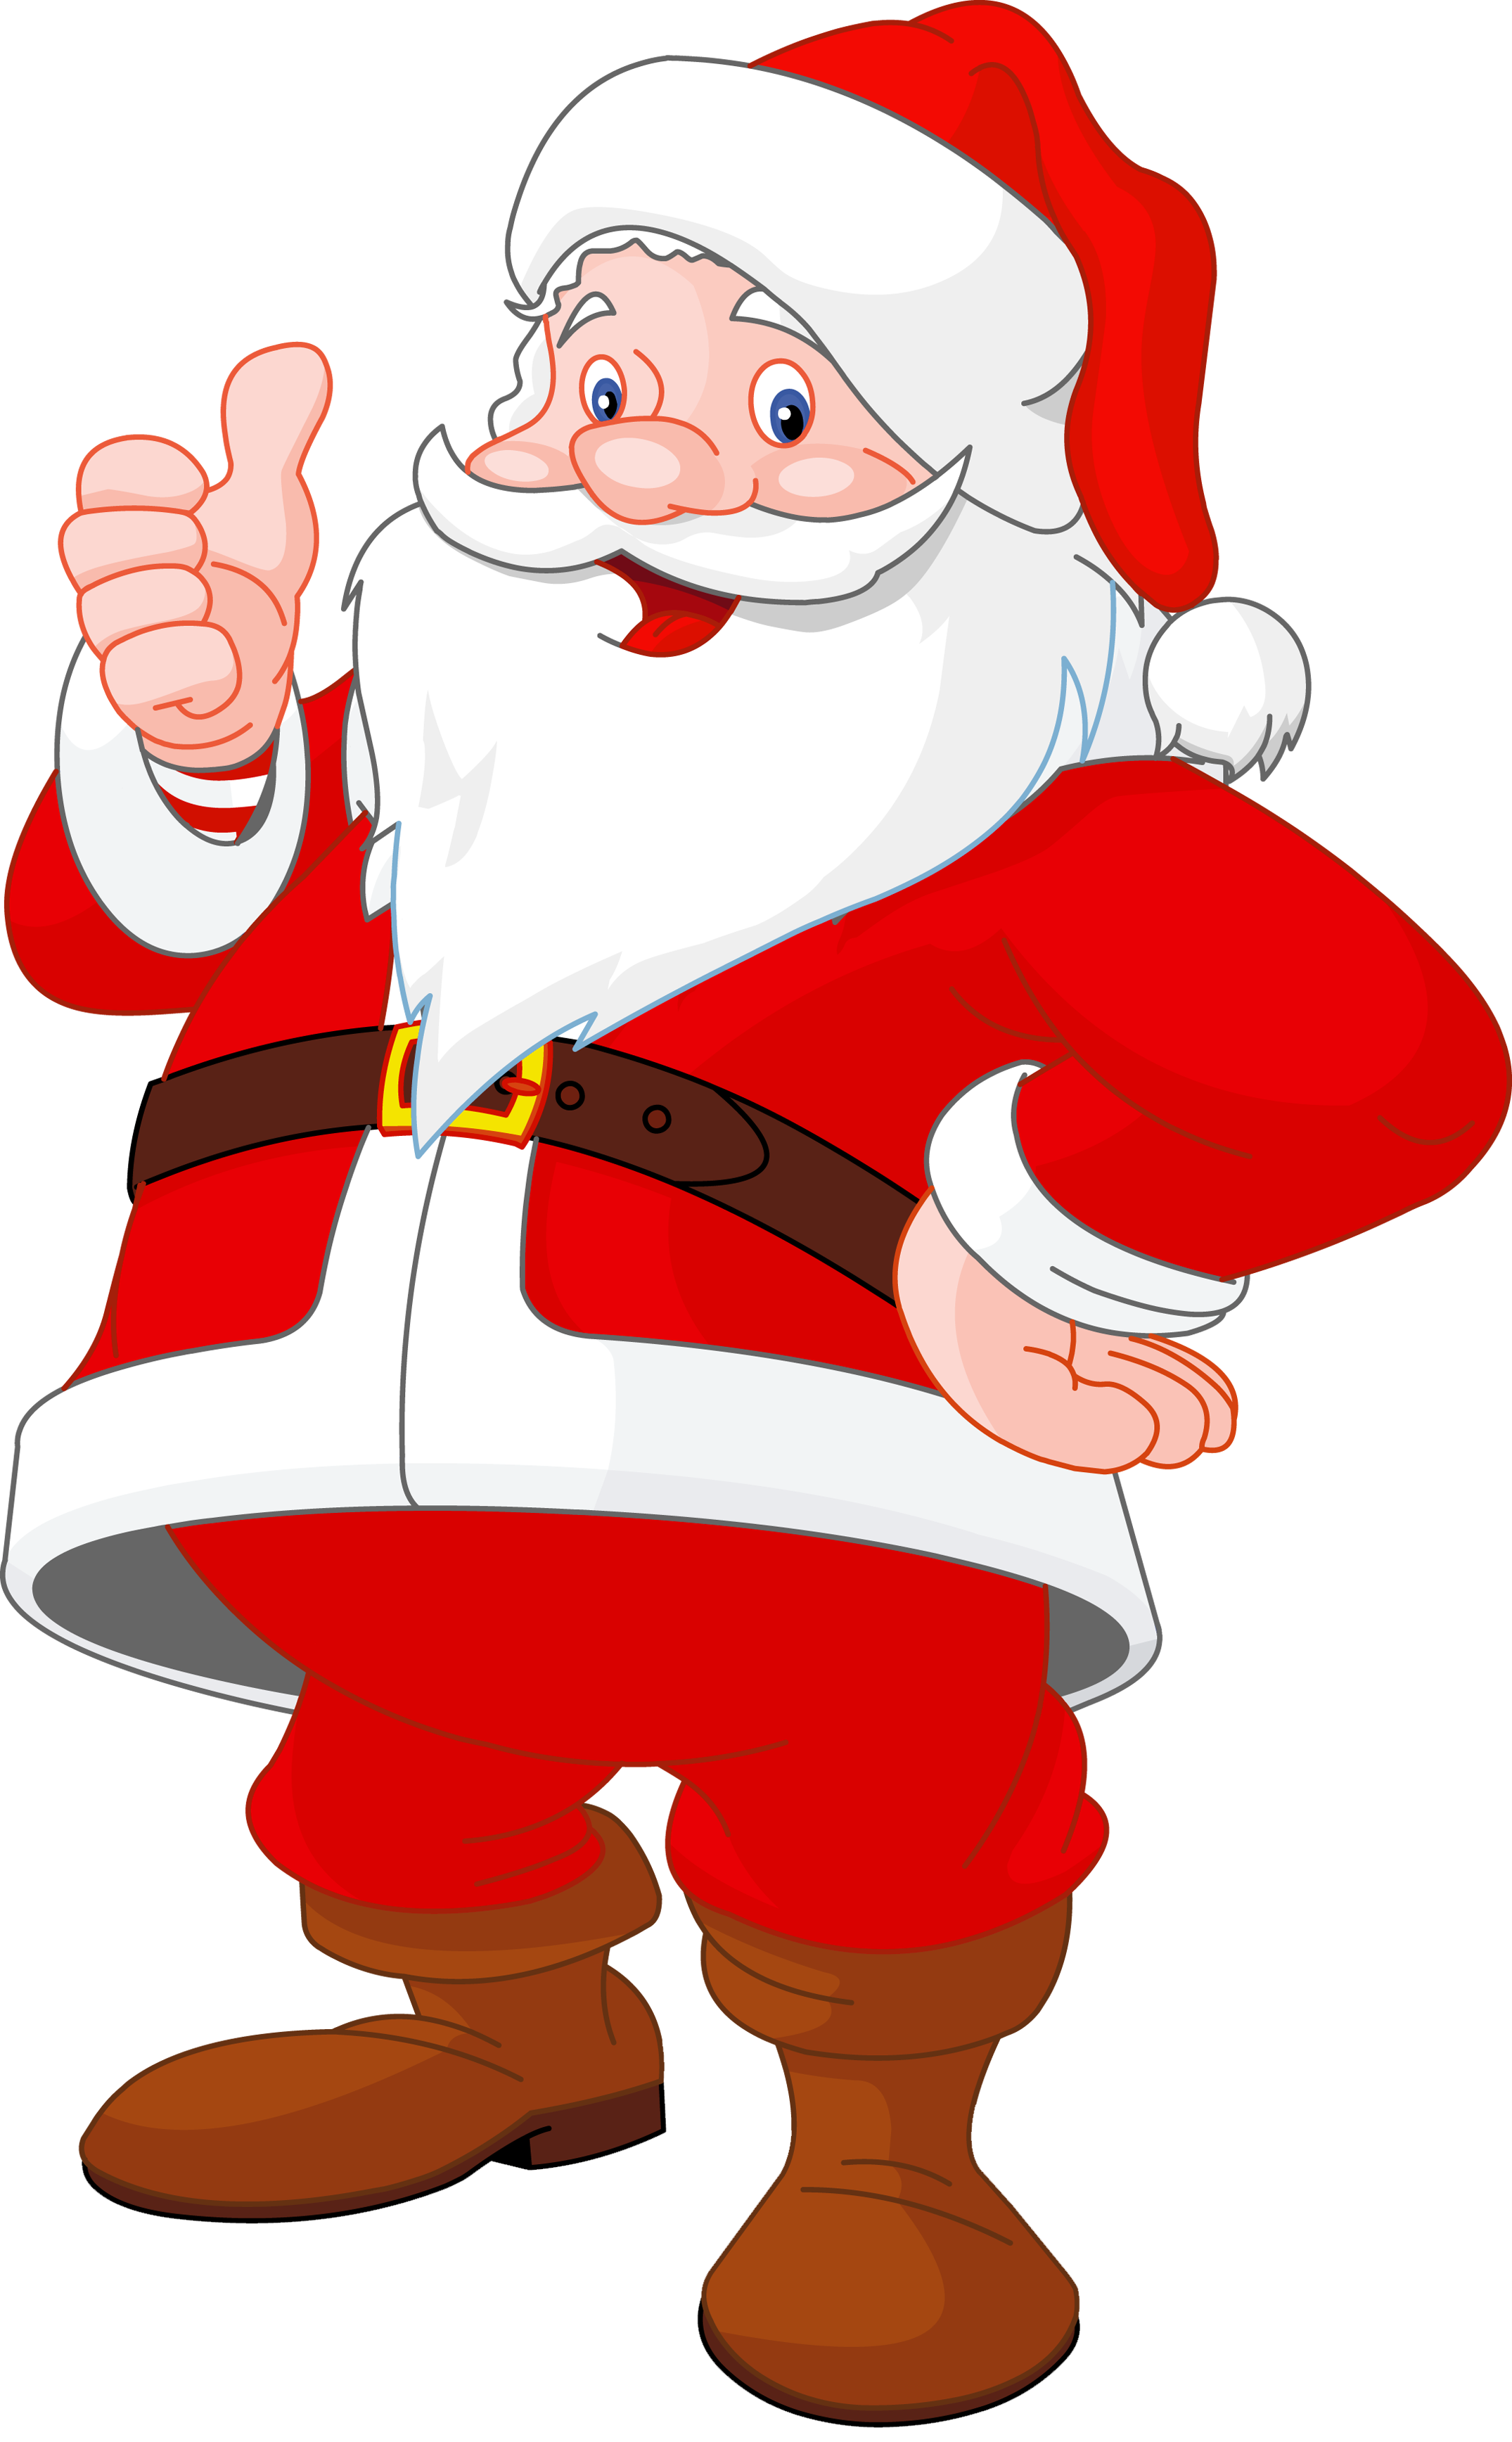 Transparent santa claus gallery. Gardening clipart crop production